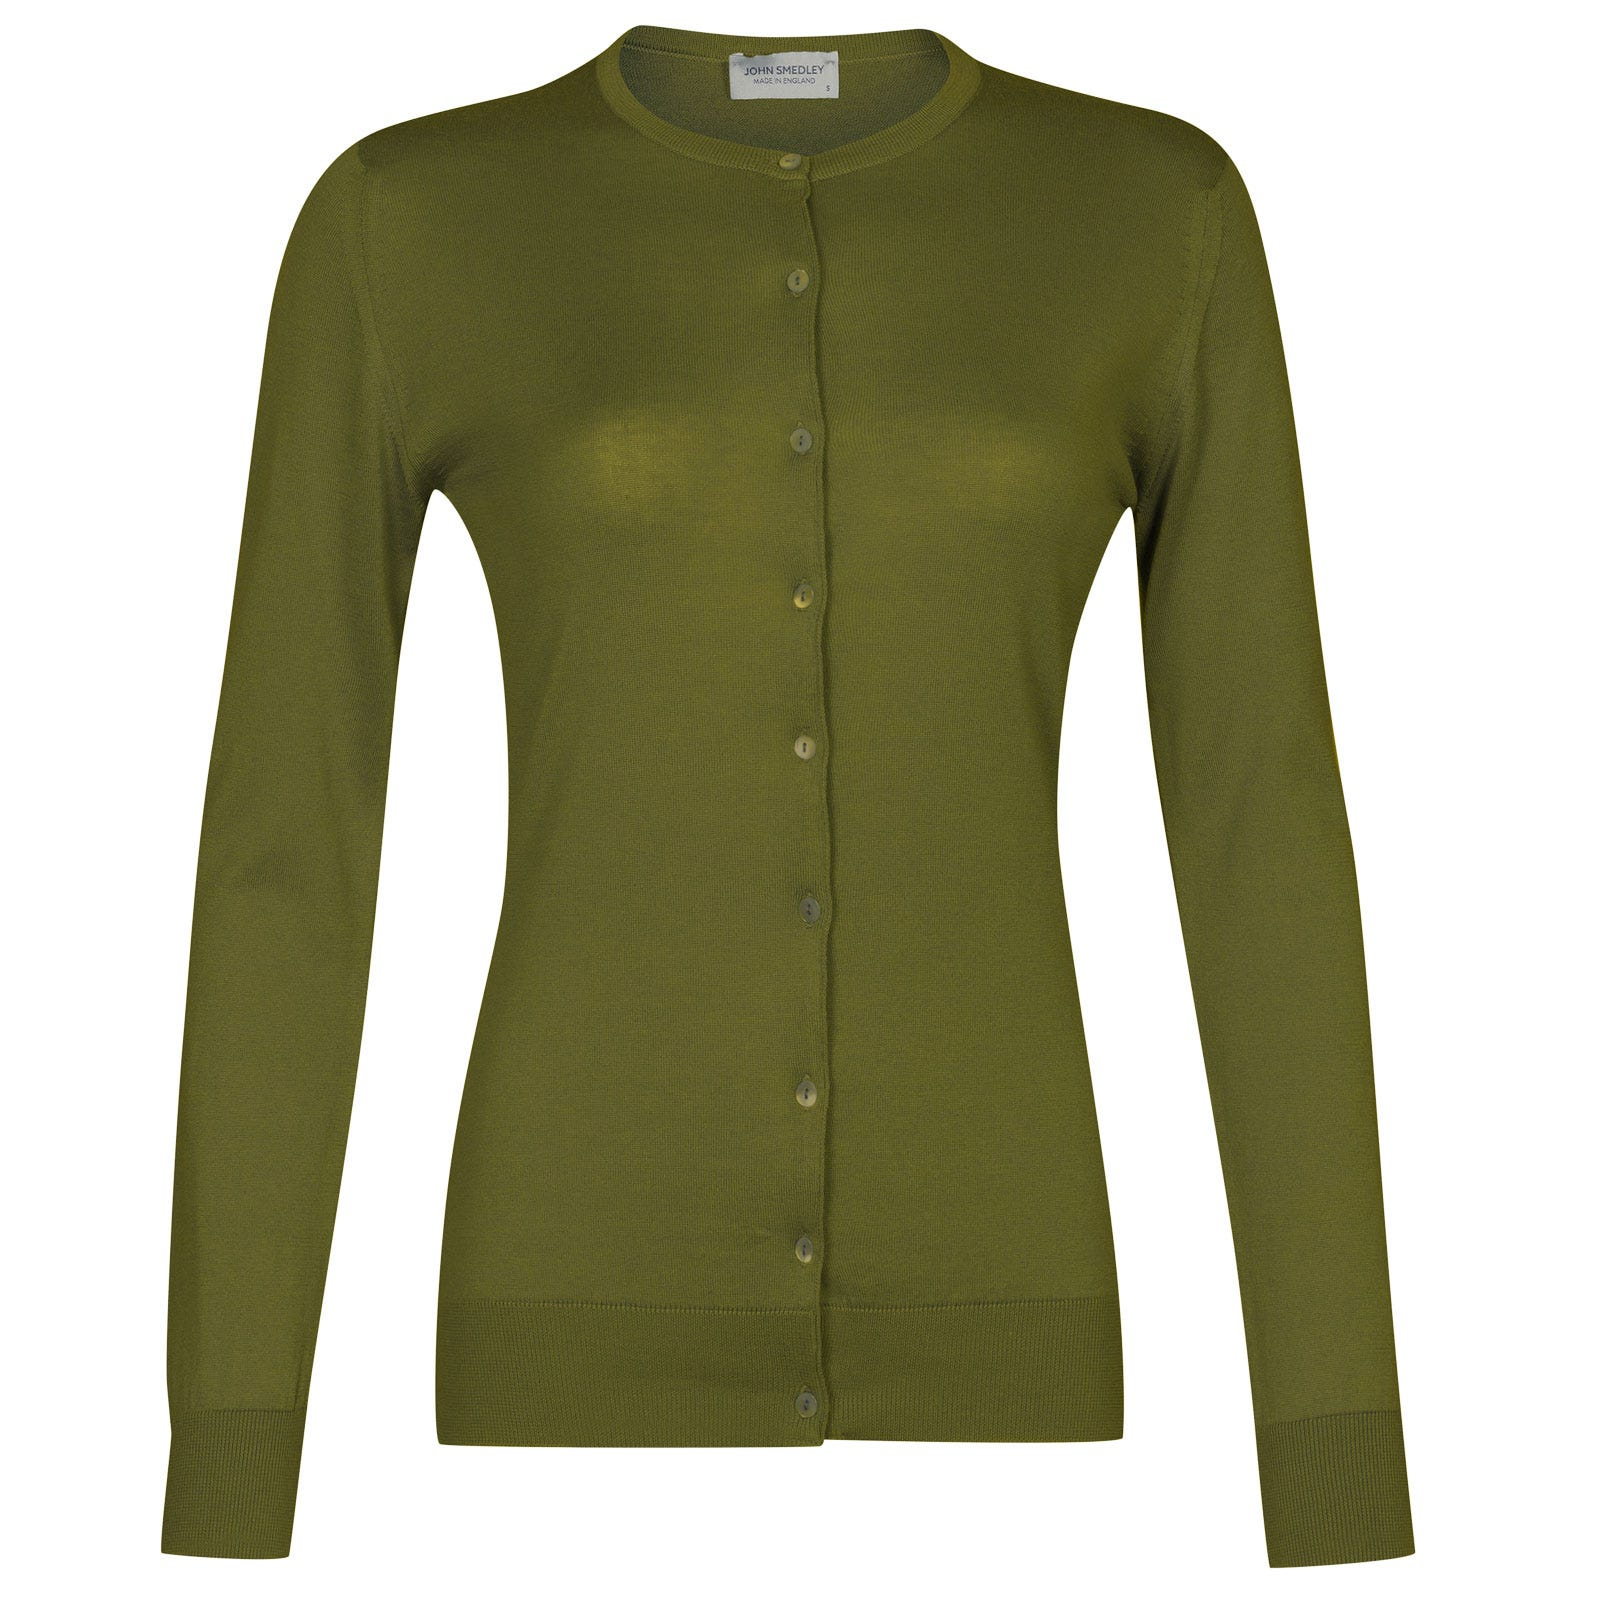 John Smedley Islington Sea Island Cotton Cardigan in Lumsdale Green-S